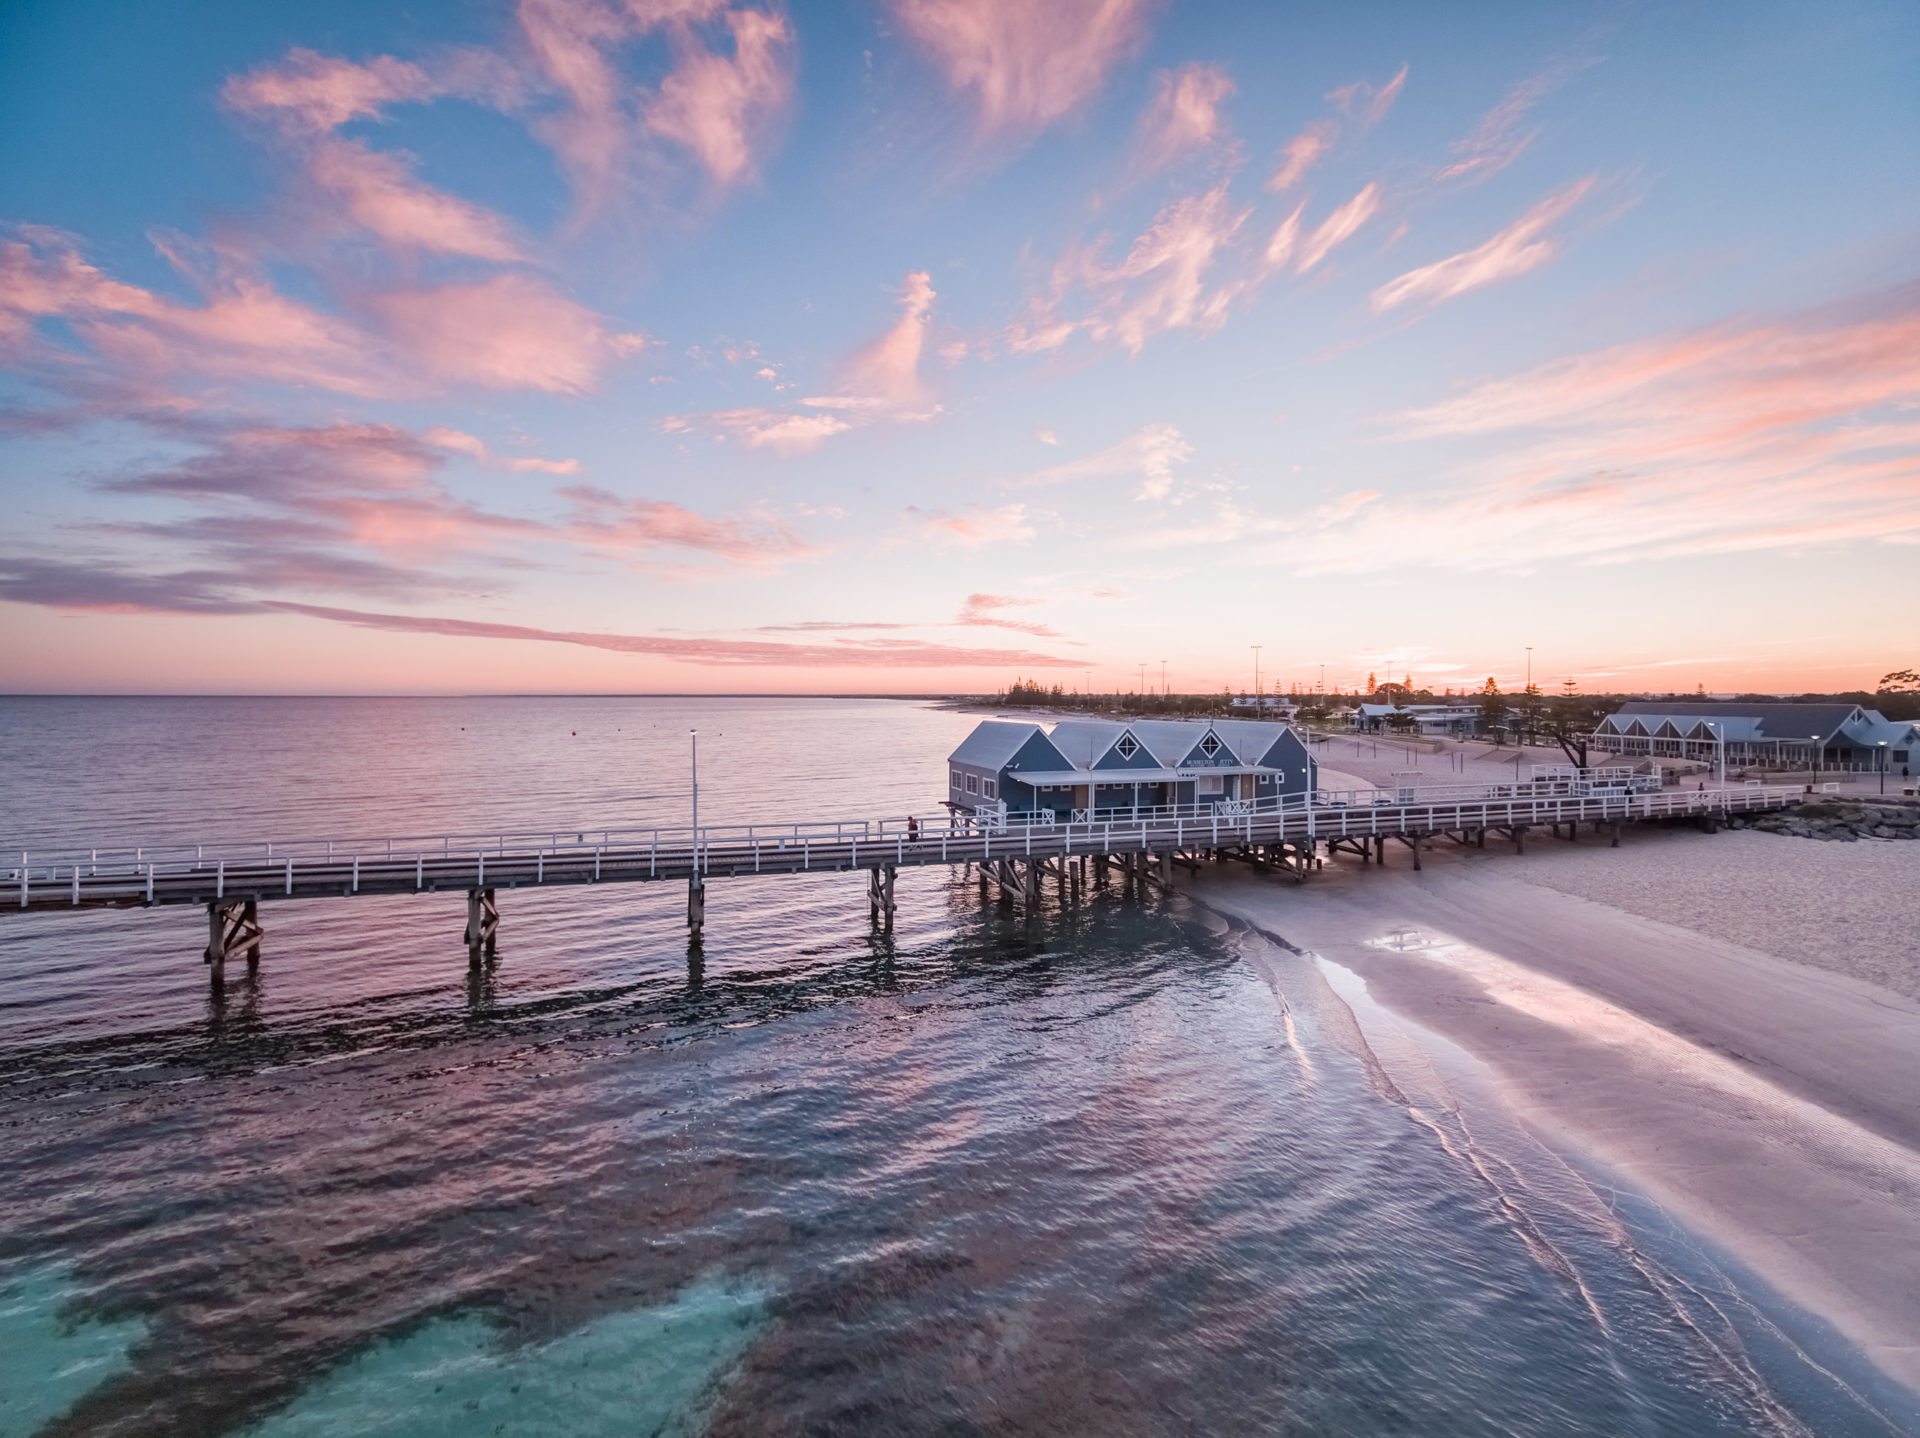 Busselton, Margaret River and Dunsborough Top Most-Searched Destination list with Booking.com